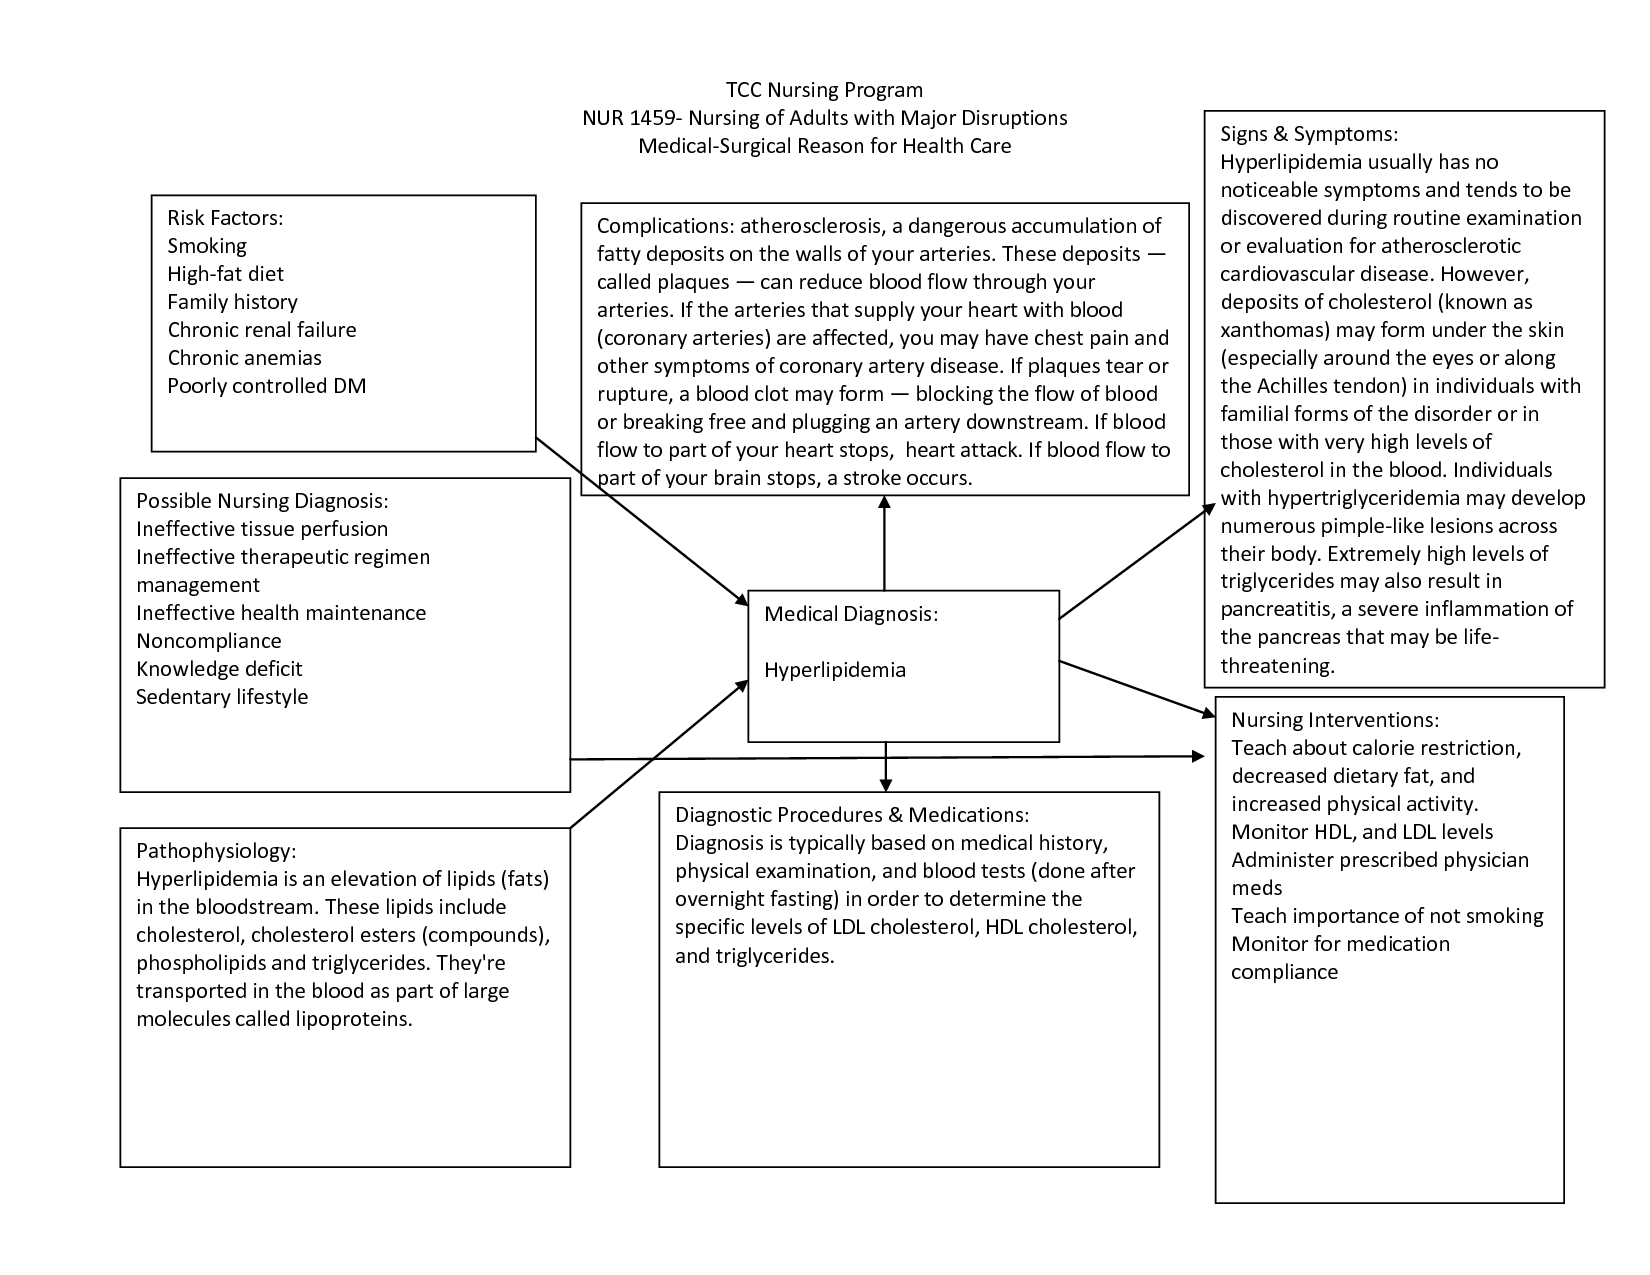 cva concept map nursing - Google Search | nursing | Pinterest ...